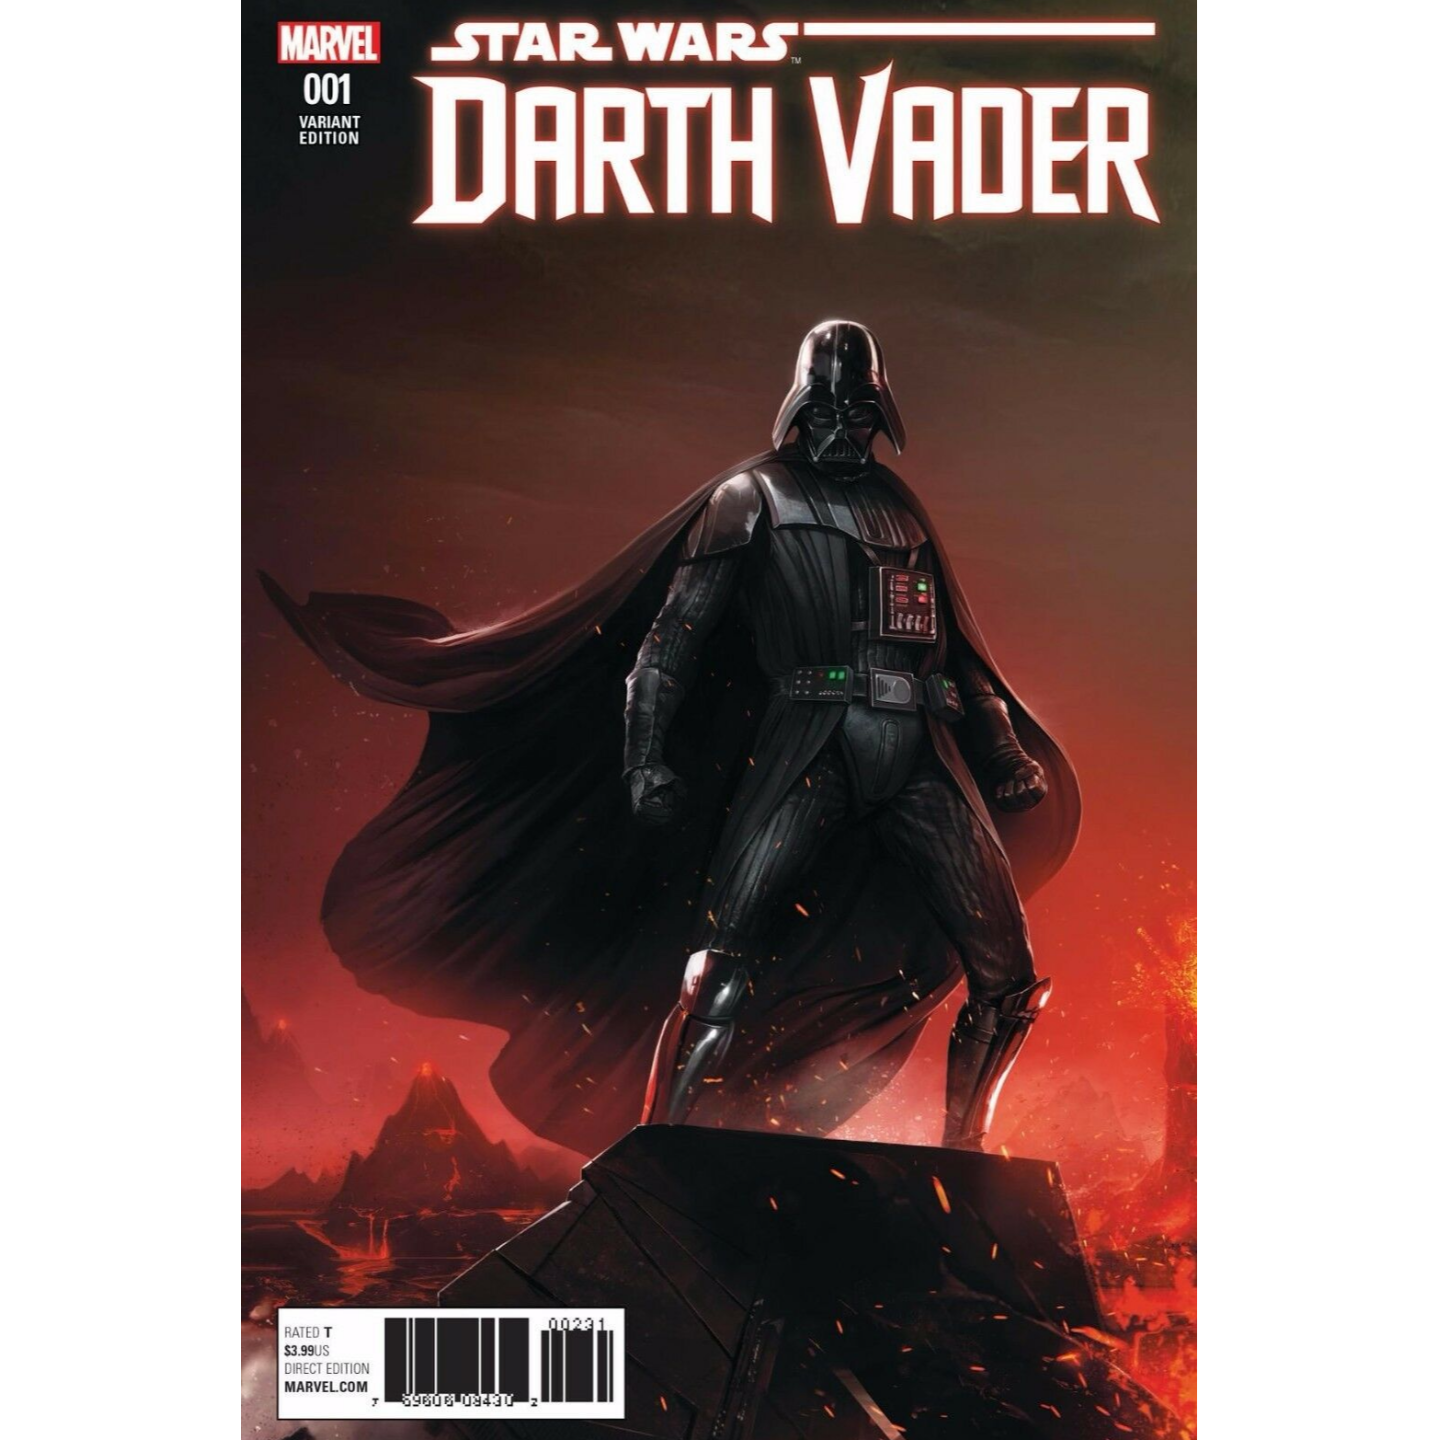 STAR WARS DARTH VADER #1 - FRANCESCO MATTINA (LIMITED 3000)